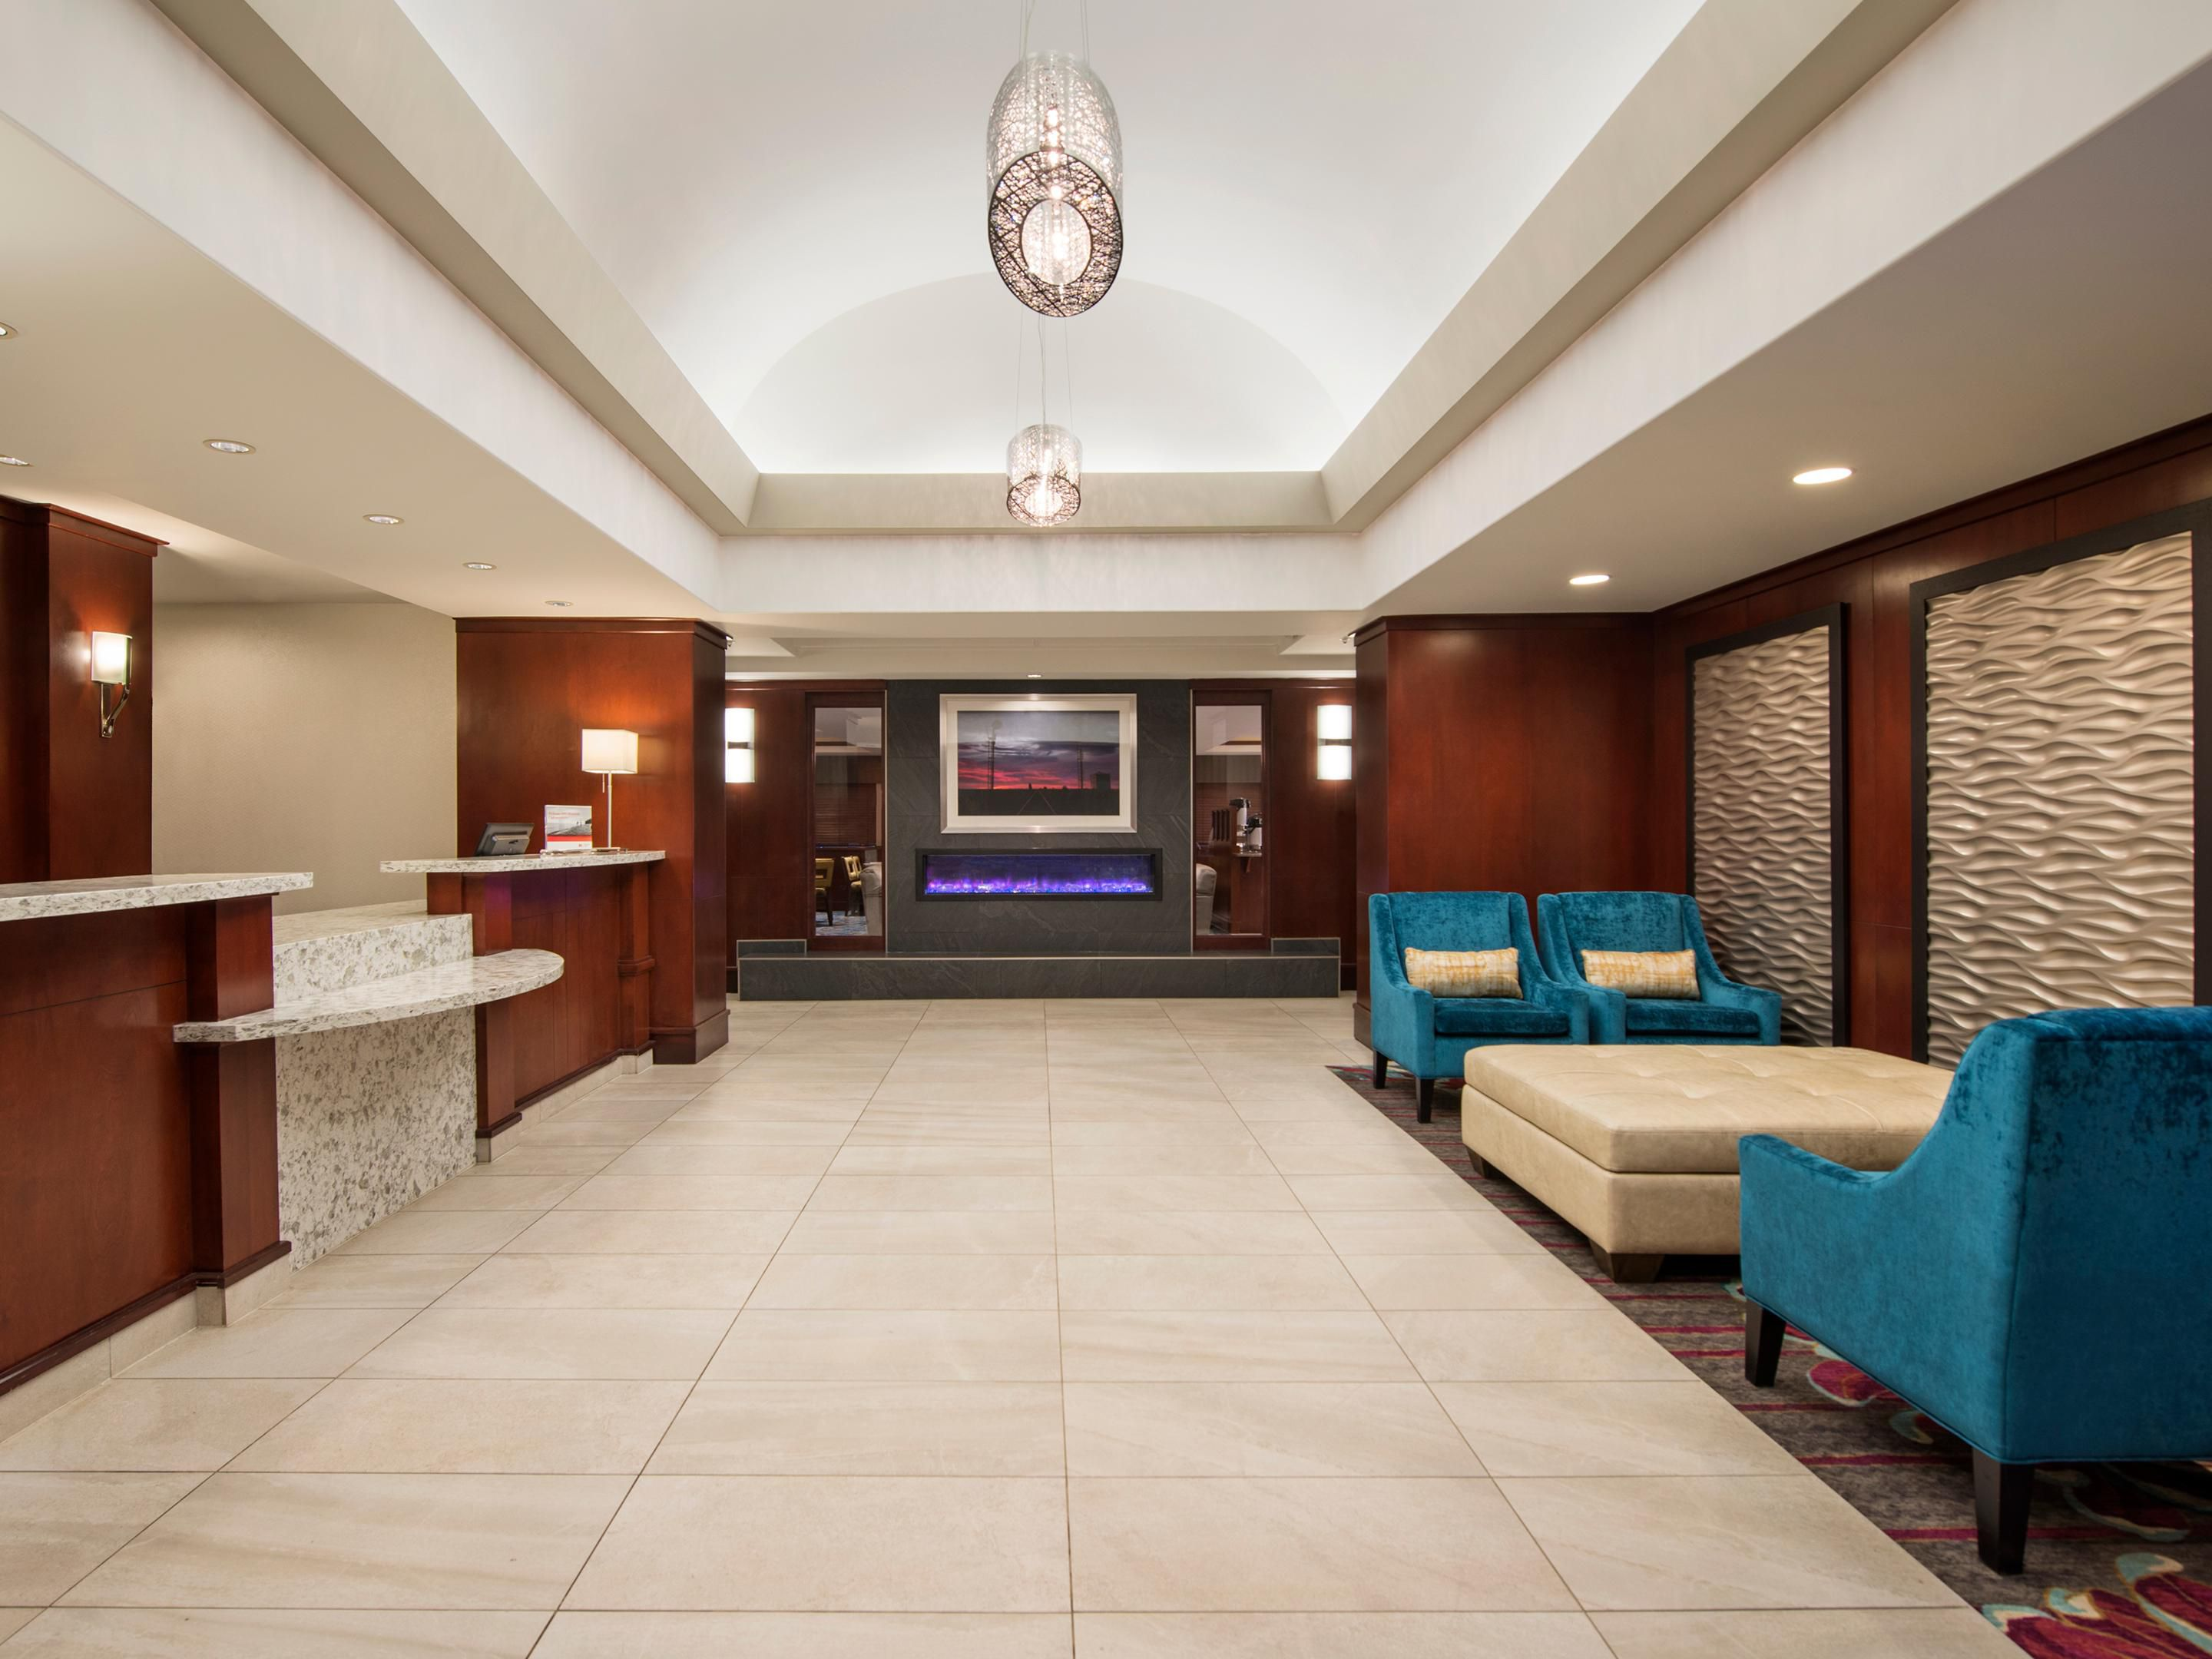 Enjoy the Holiday Inn Express's cozy and comfortable lobby